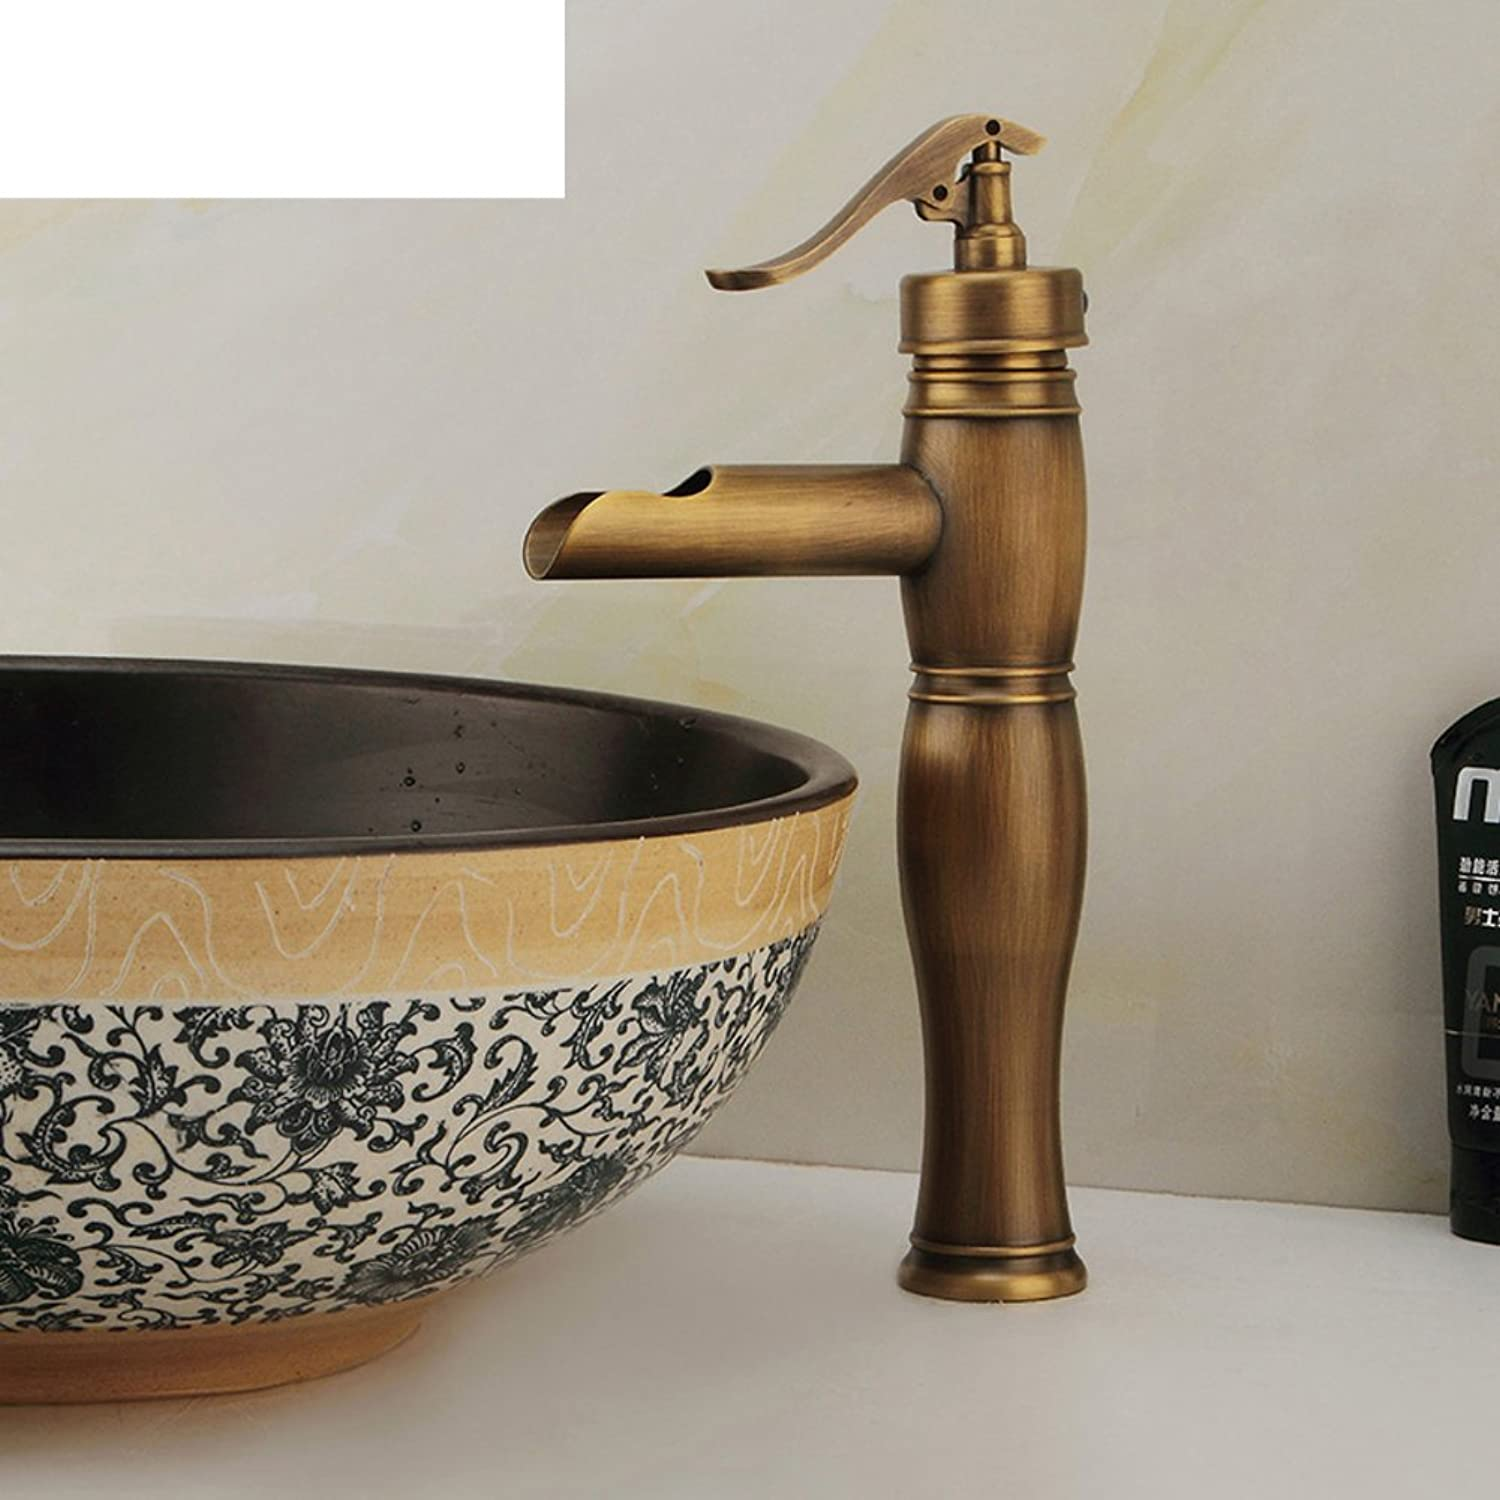 HCP European antique faucet basin mixer Oblique mouth hot and cold taps bronze Playing a leading bucket